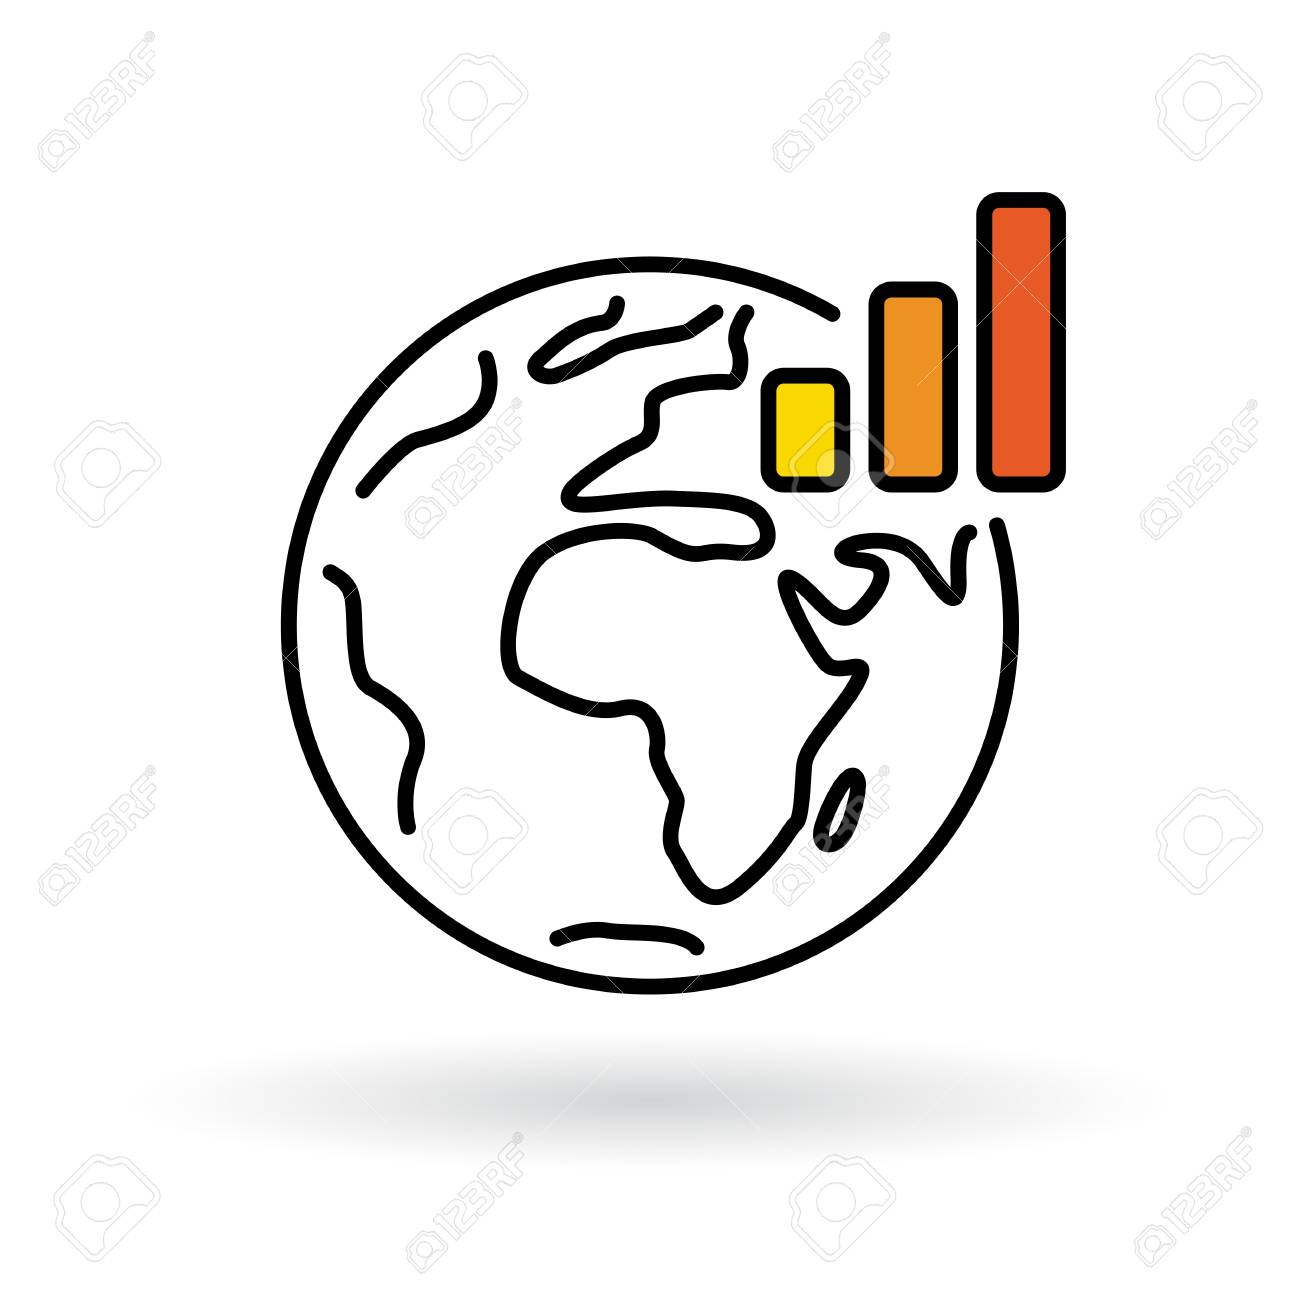 1300x1300 Simple World With Global Warming Chart Icon. Earth And Climate